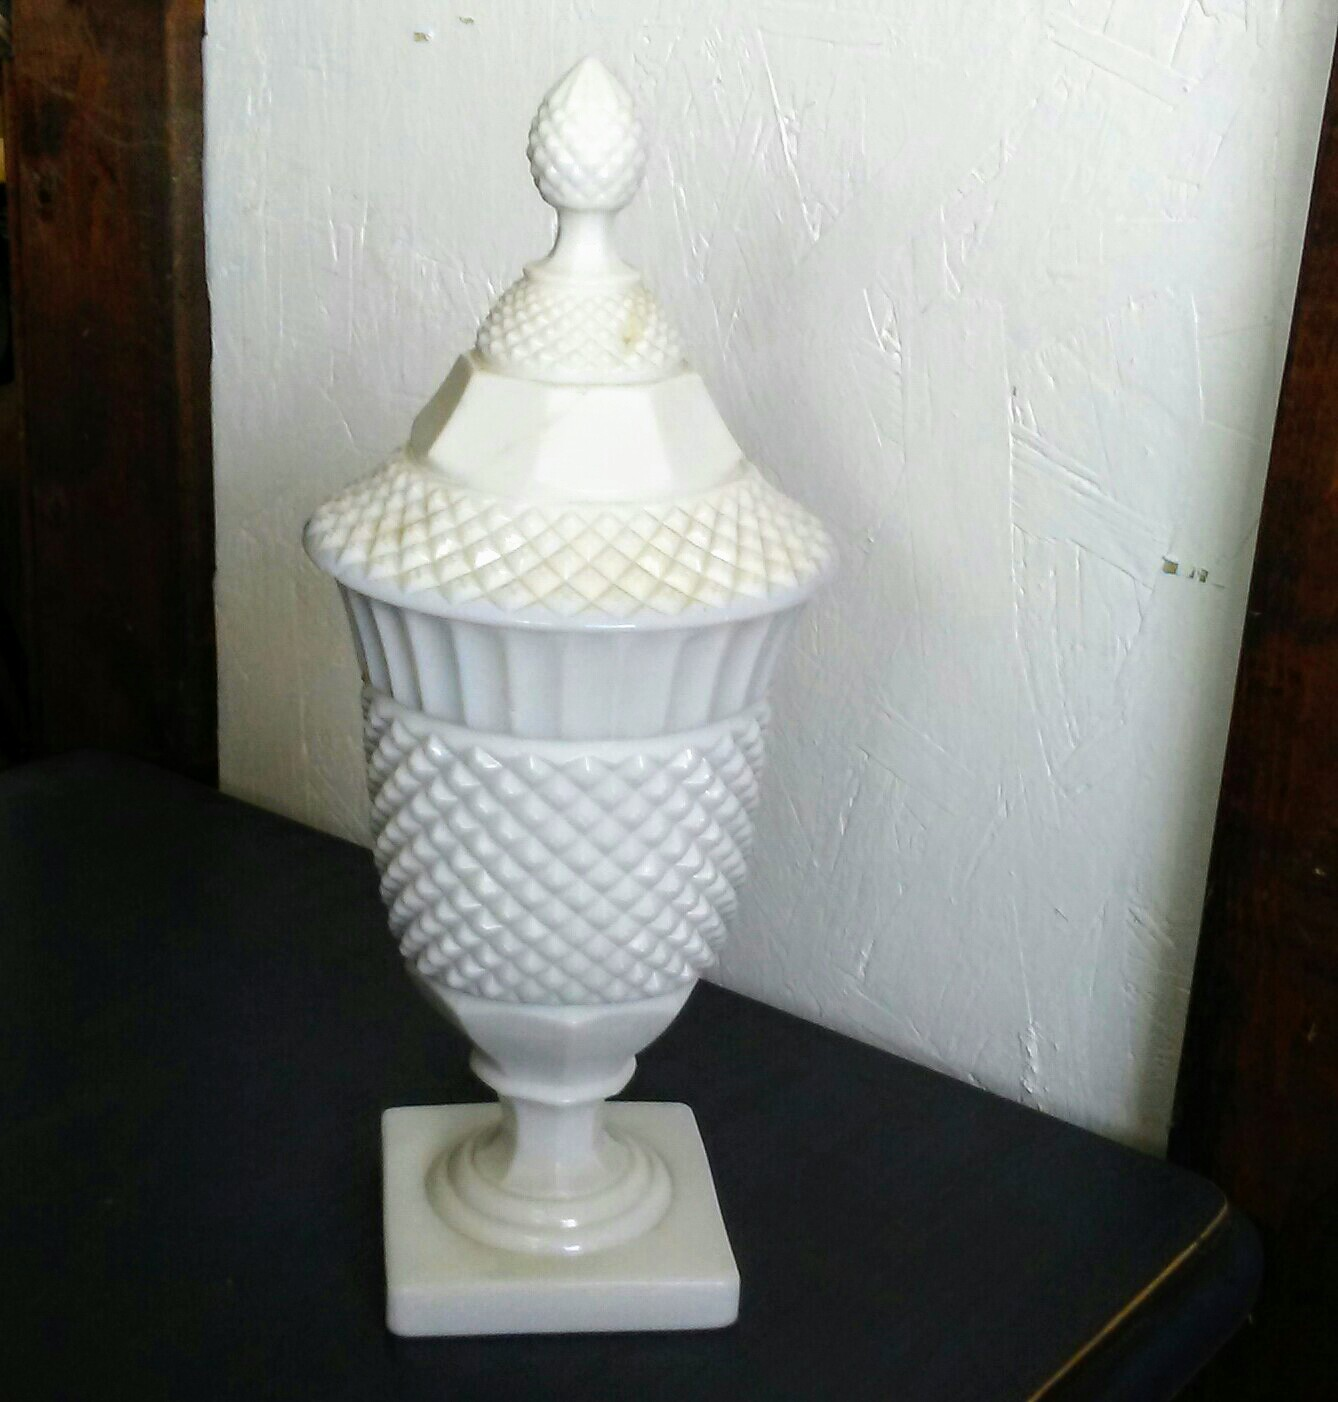 Decorative Milk Urn Milk Glass Jar Vintage Milk Glass Milk Glass Urn